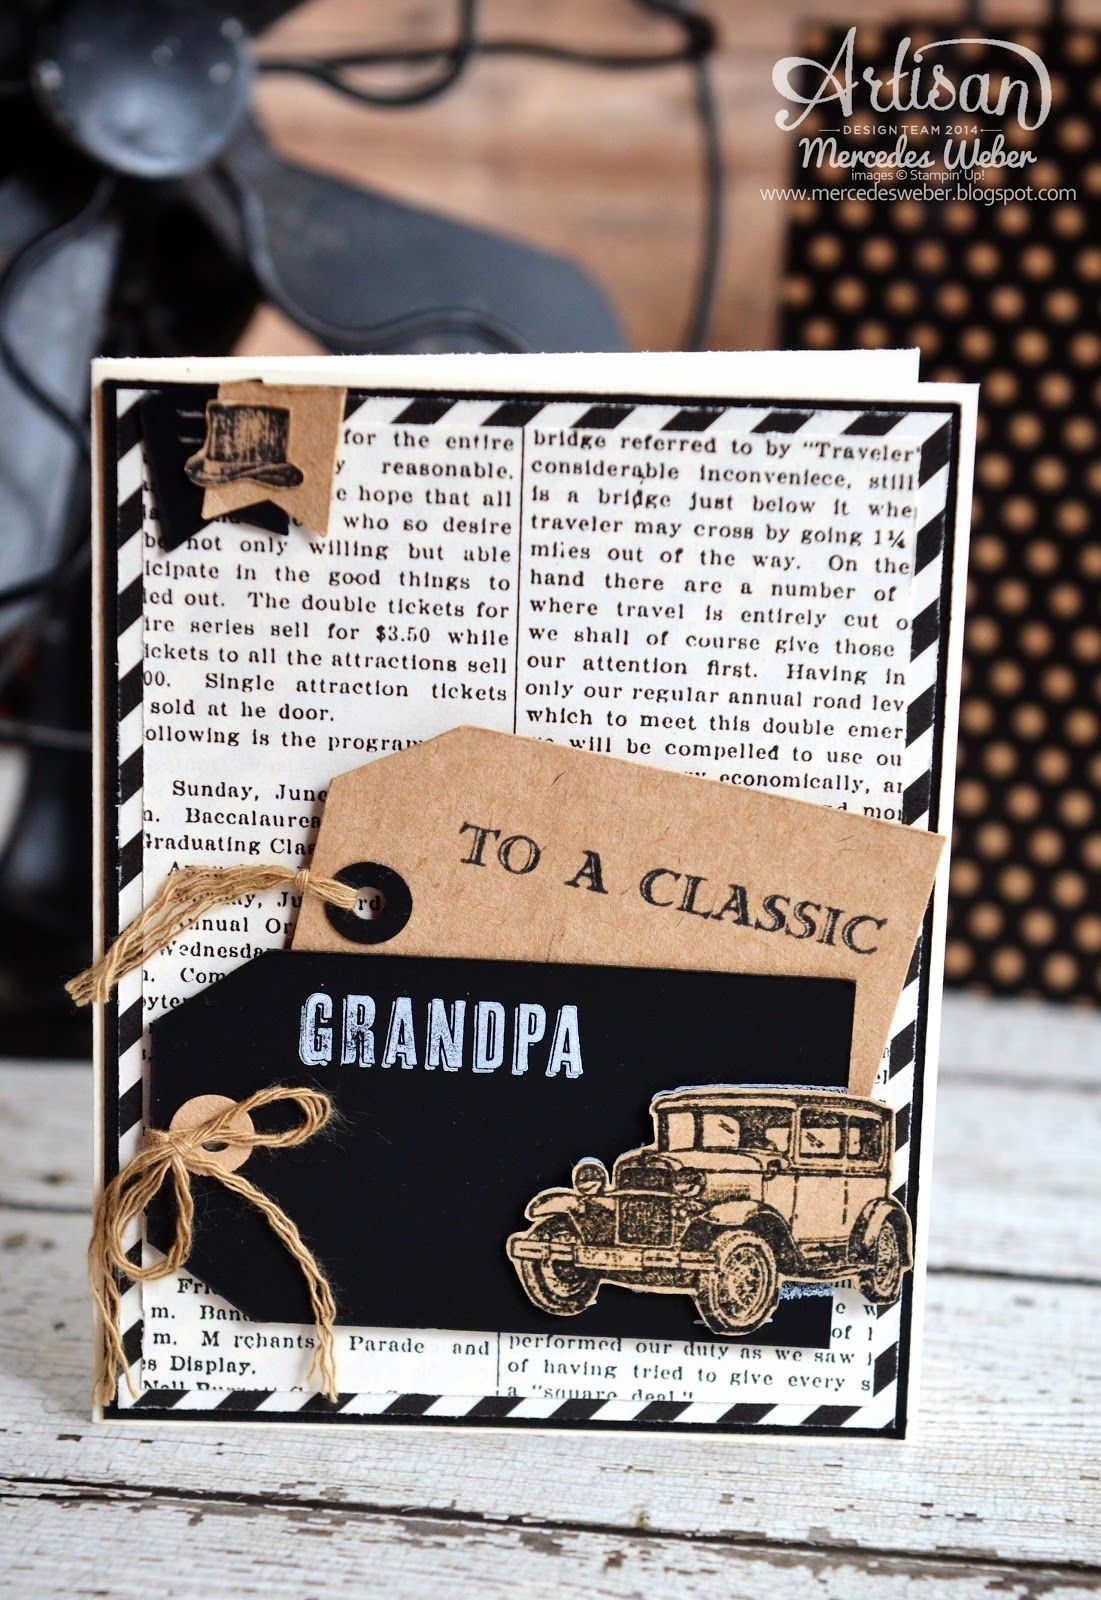 Don T Forget To Make A Card For Grandpa This Fathers Day Mercedes